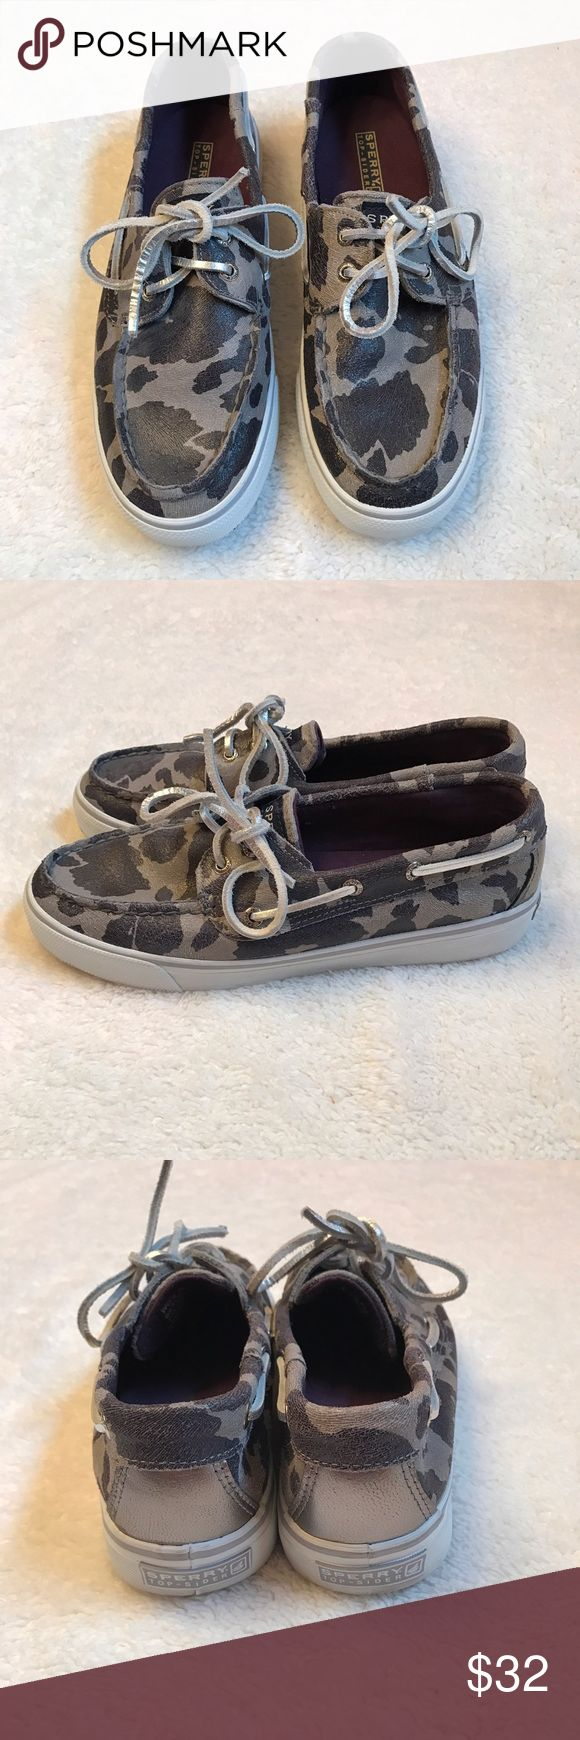 ⏰Sperry topsiders weekend sale! Excellent condition Sperry Top-Sider Shoes Flats & Loafers